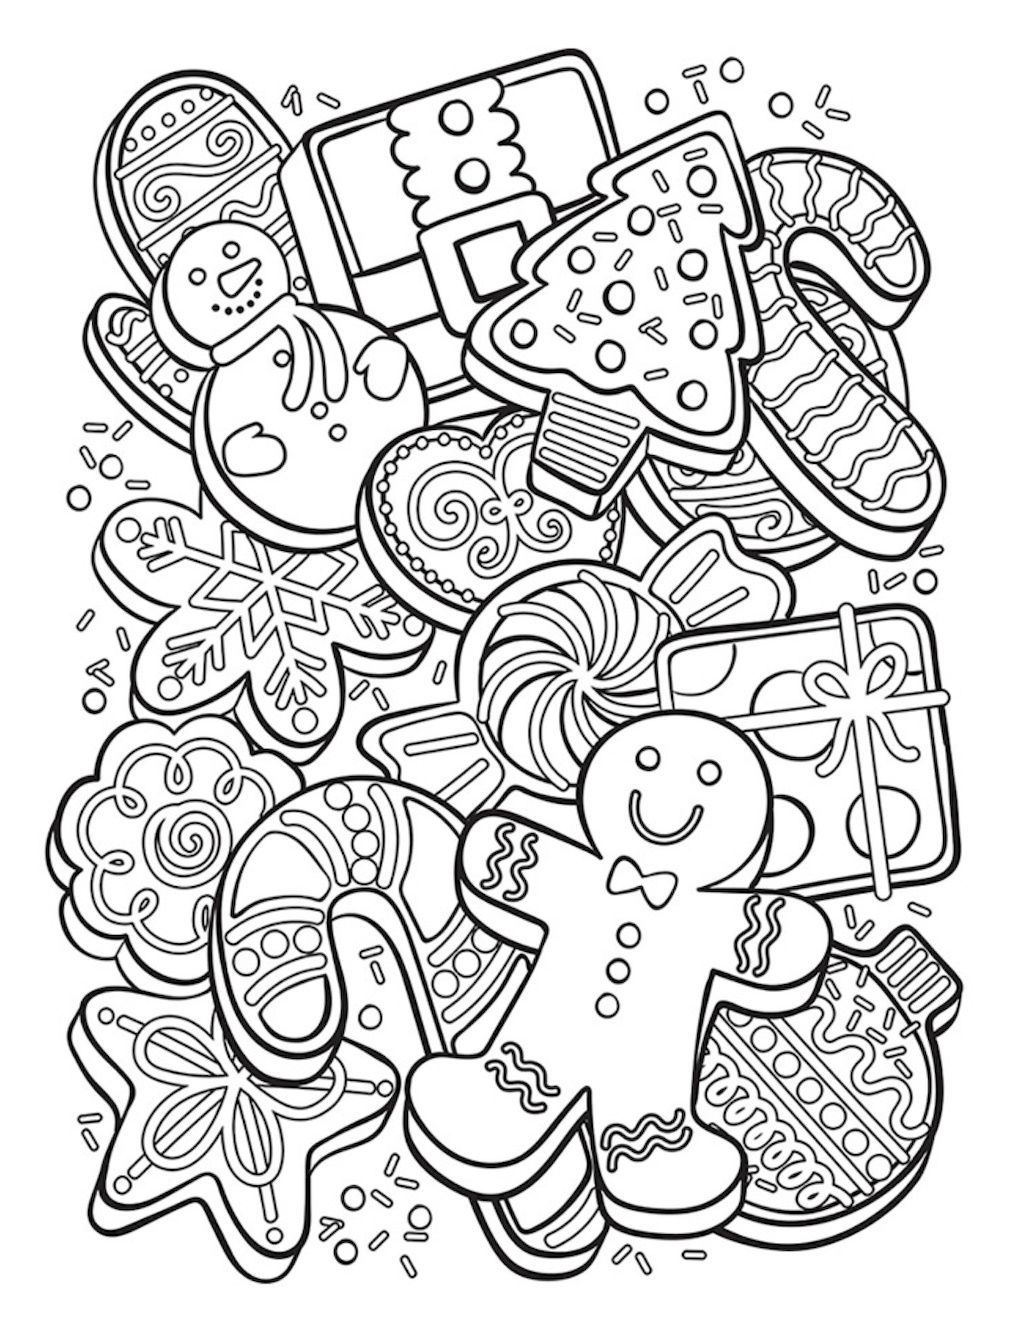 Free Christmas Cookies Coloring Page Christmas Coloring Sheets Printable Christmas Coloring Pages Crayola Coloring Pages